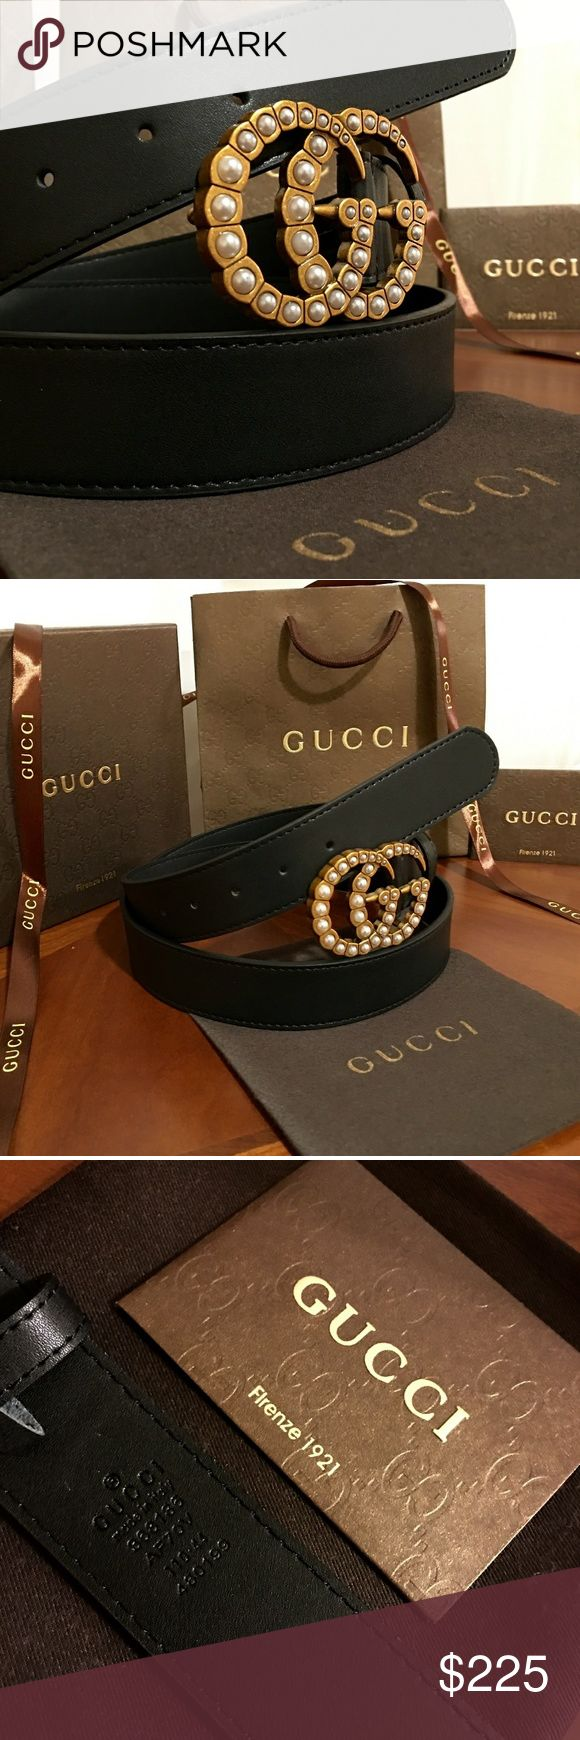 """Gucci Double G Belt!!! Gucci GG Belt W/Pearl & Antique Brass Double G Buckle!!!  Brand New!!!  Size Available - 32"""", 34"""", 36"""", 38"""", 40"""", 42""""!!!  Includes Gucci Belt, Gift Box, Dust Bag, Ribbon, Etc!!!  Great Gift Idea!!!  Last Available!!!  Check My Listings For Other Great Items!!!               Ignore: Gucci gg monogram casual dress belts men's women's guccissma leather gold silver web tiger bee embossed panther wool cable knit blooms supreme print angry cat ufo dragon studded snake double…"""